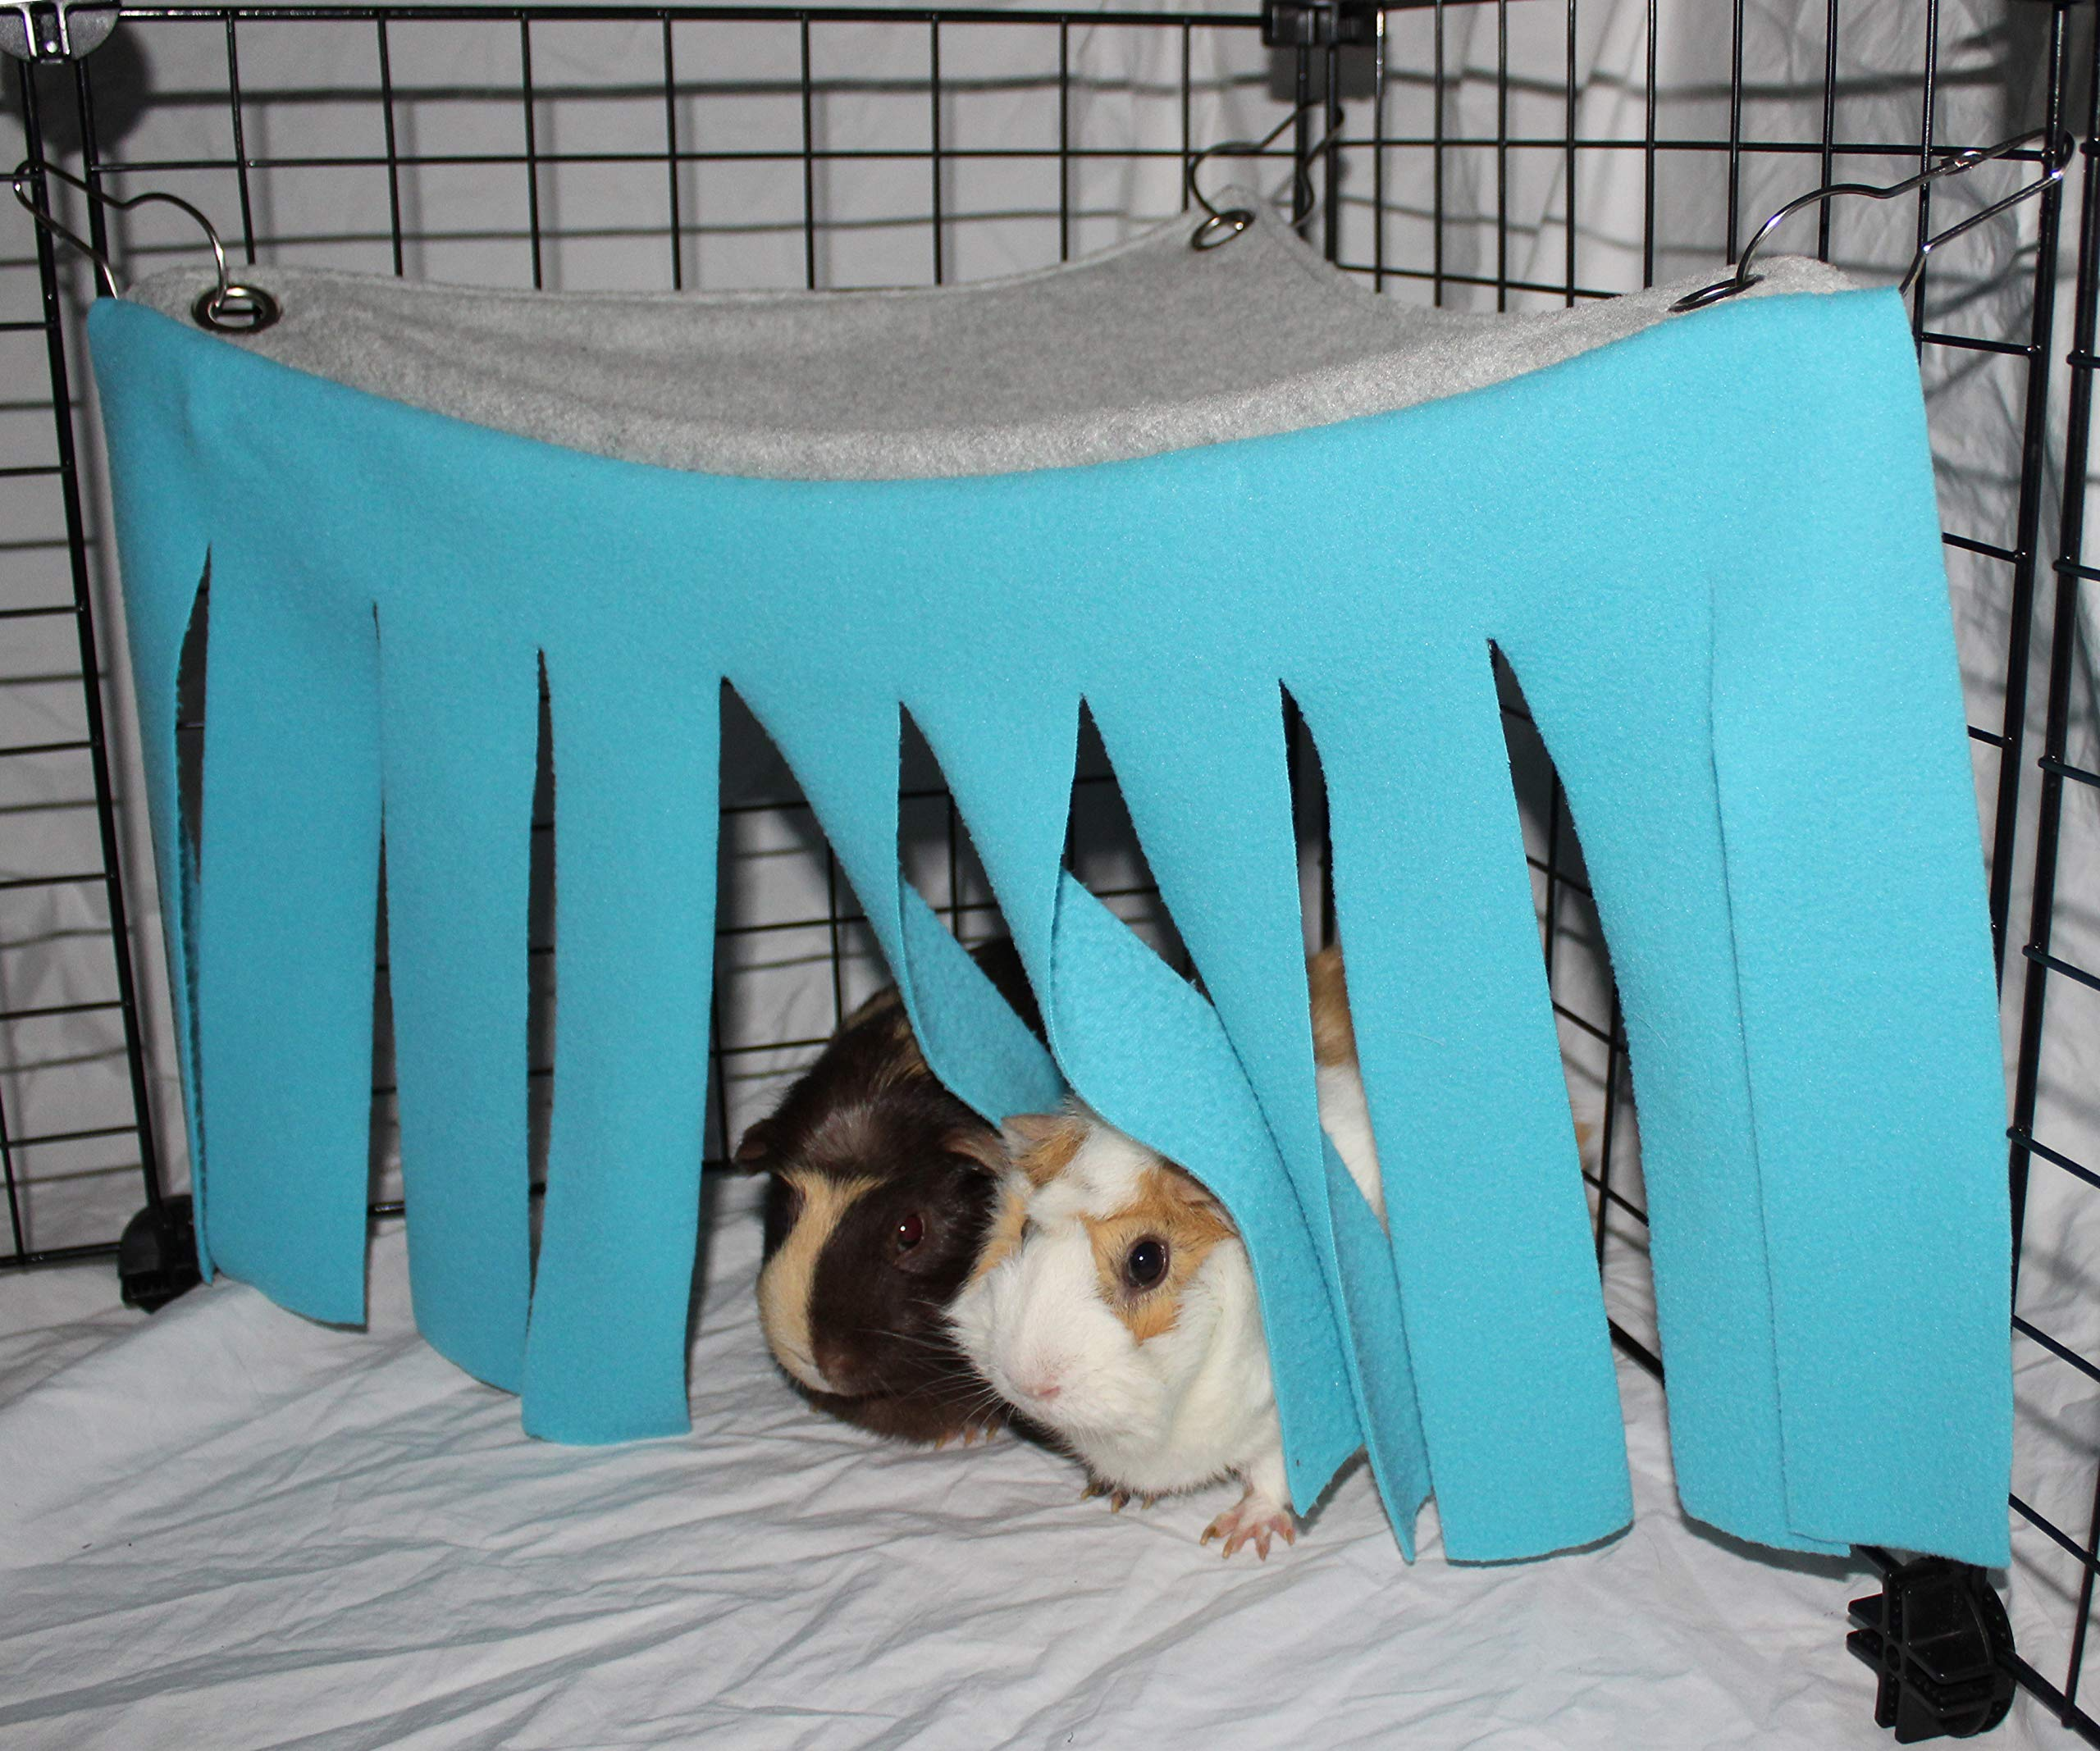 Corner Fleece Forest Hideout for Guinea Pigs, Ferrets, Chinchillas, Hedgehogs, Dwarf Rabbits and Other Small Pets - Accessories and Toys 3